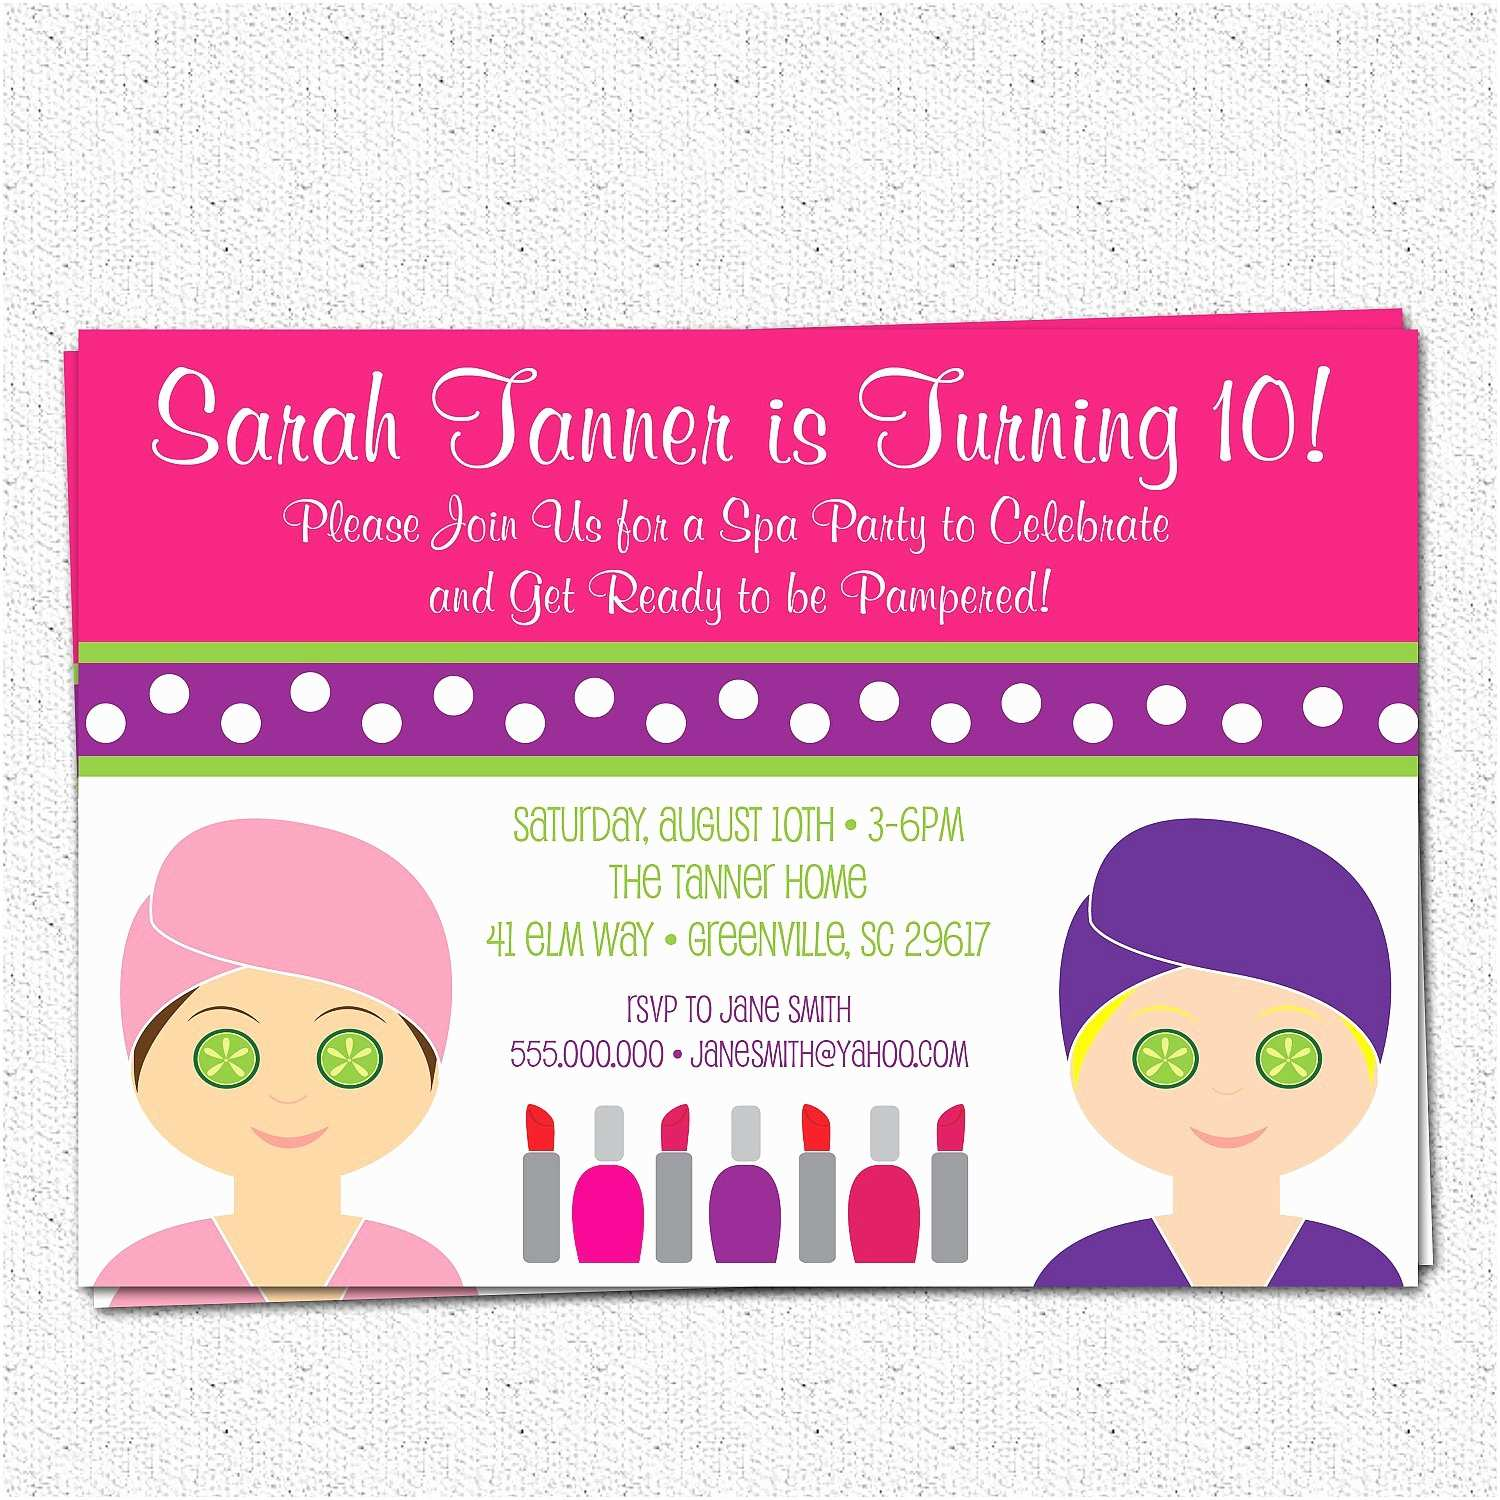 Pamper Party Invitations Pamper Party Invitations Free